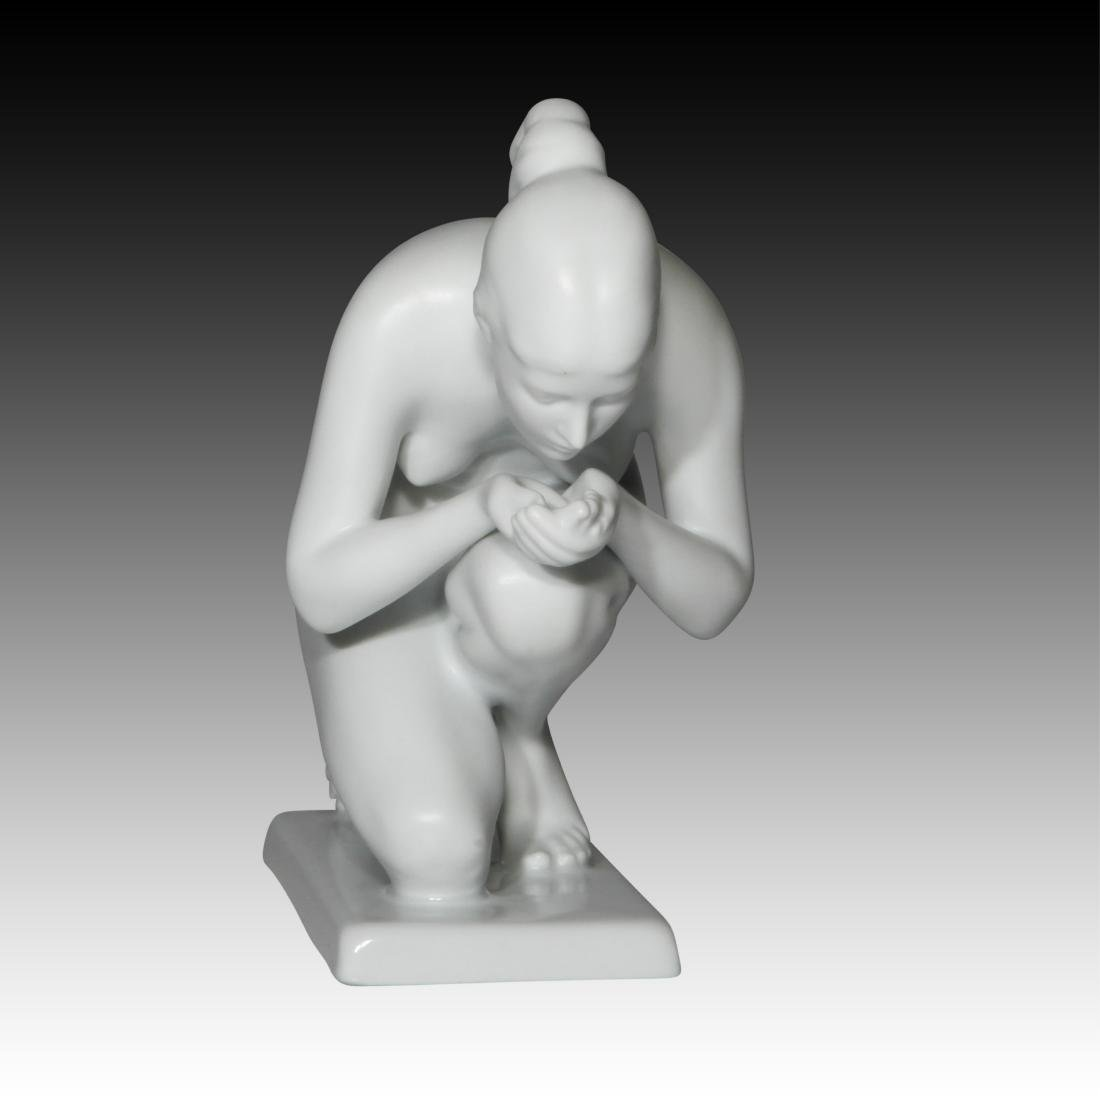 Rosenthal Nude Female Drinking Water Figurine